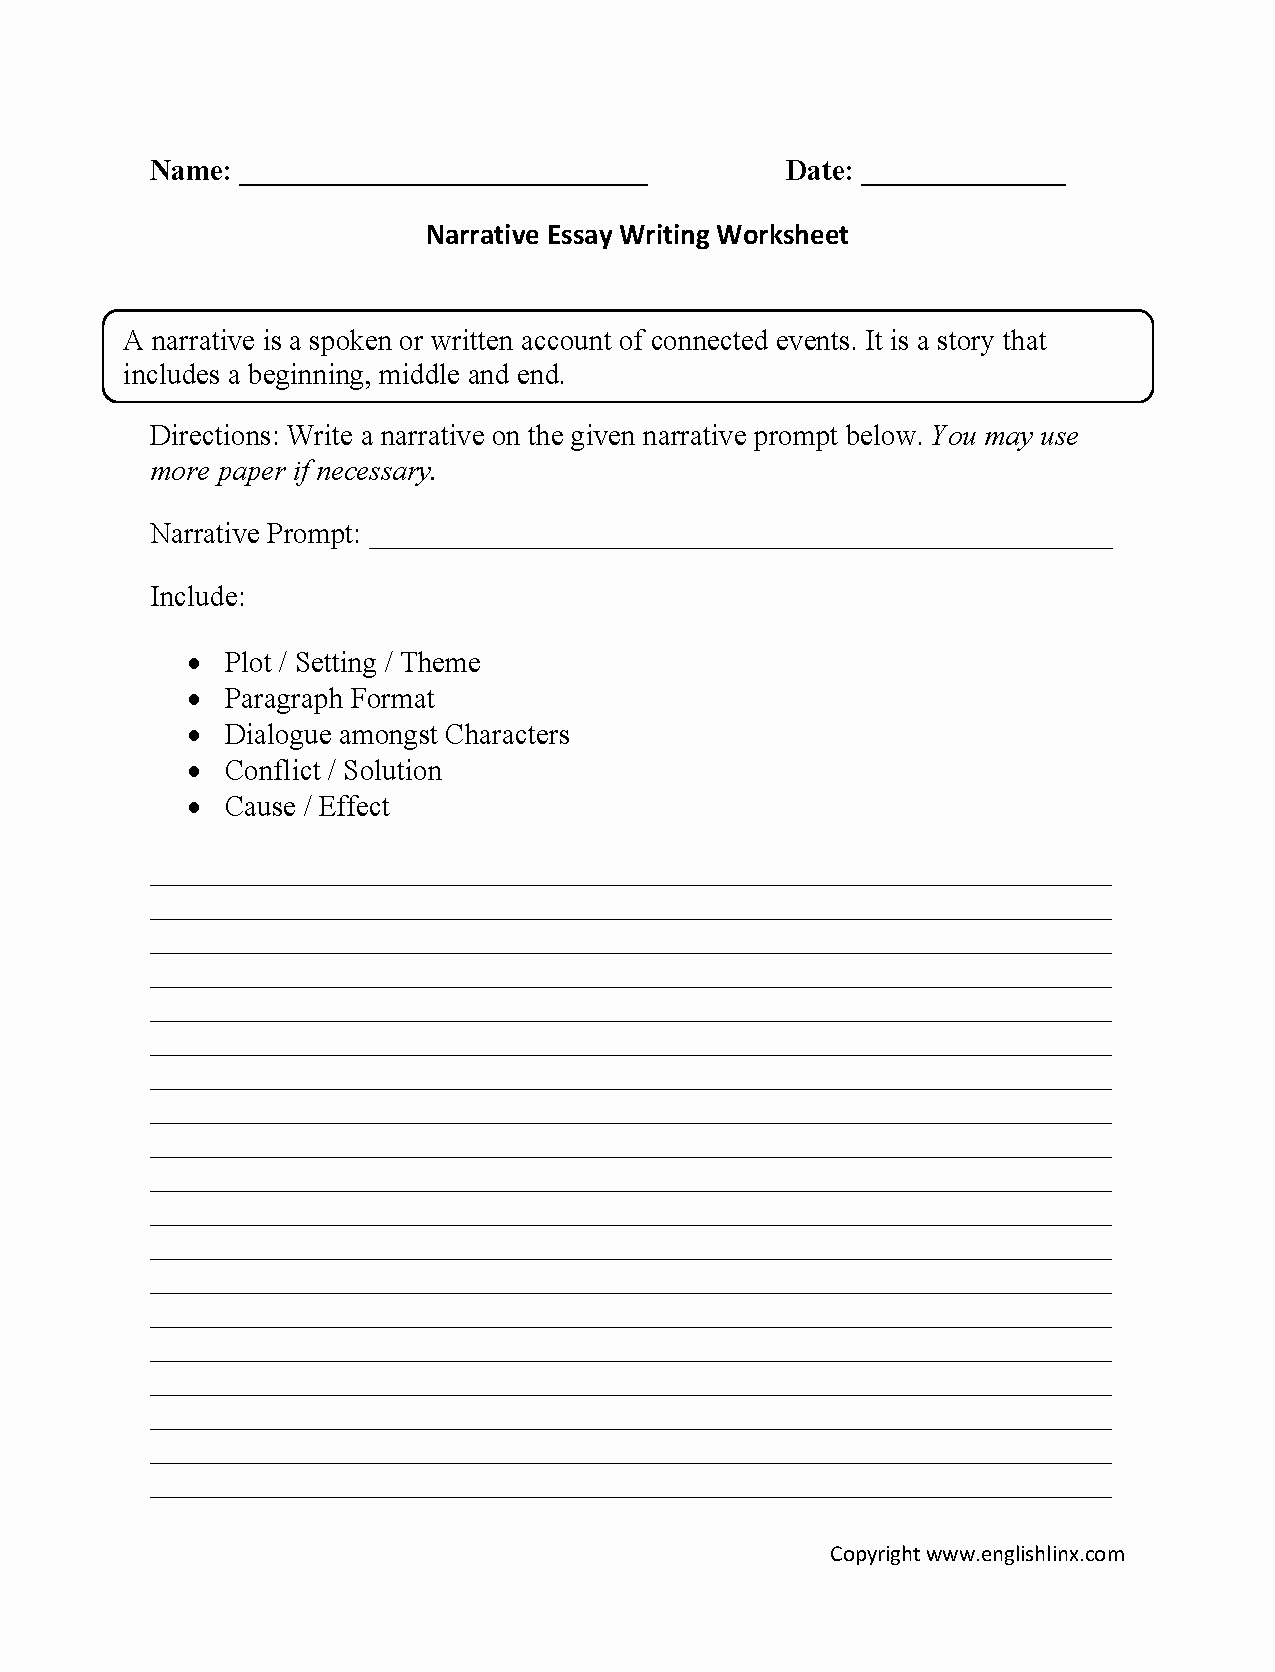 Writing Process Worksheet Pdf New Writing Worksheets